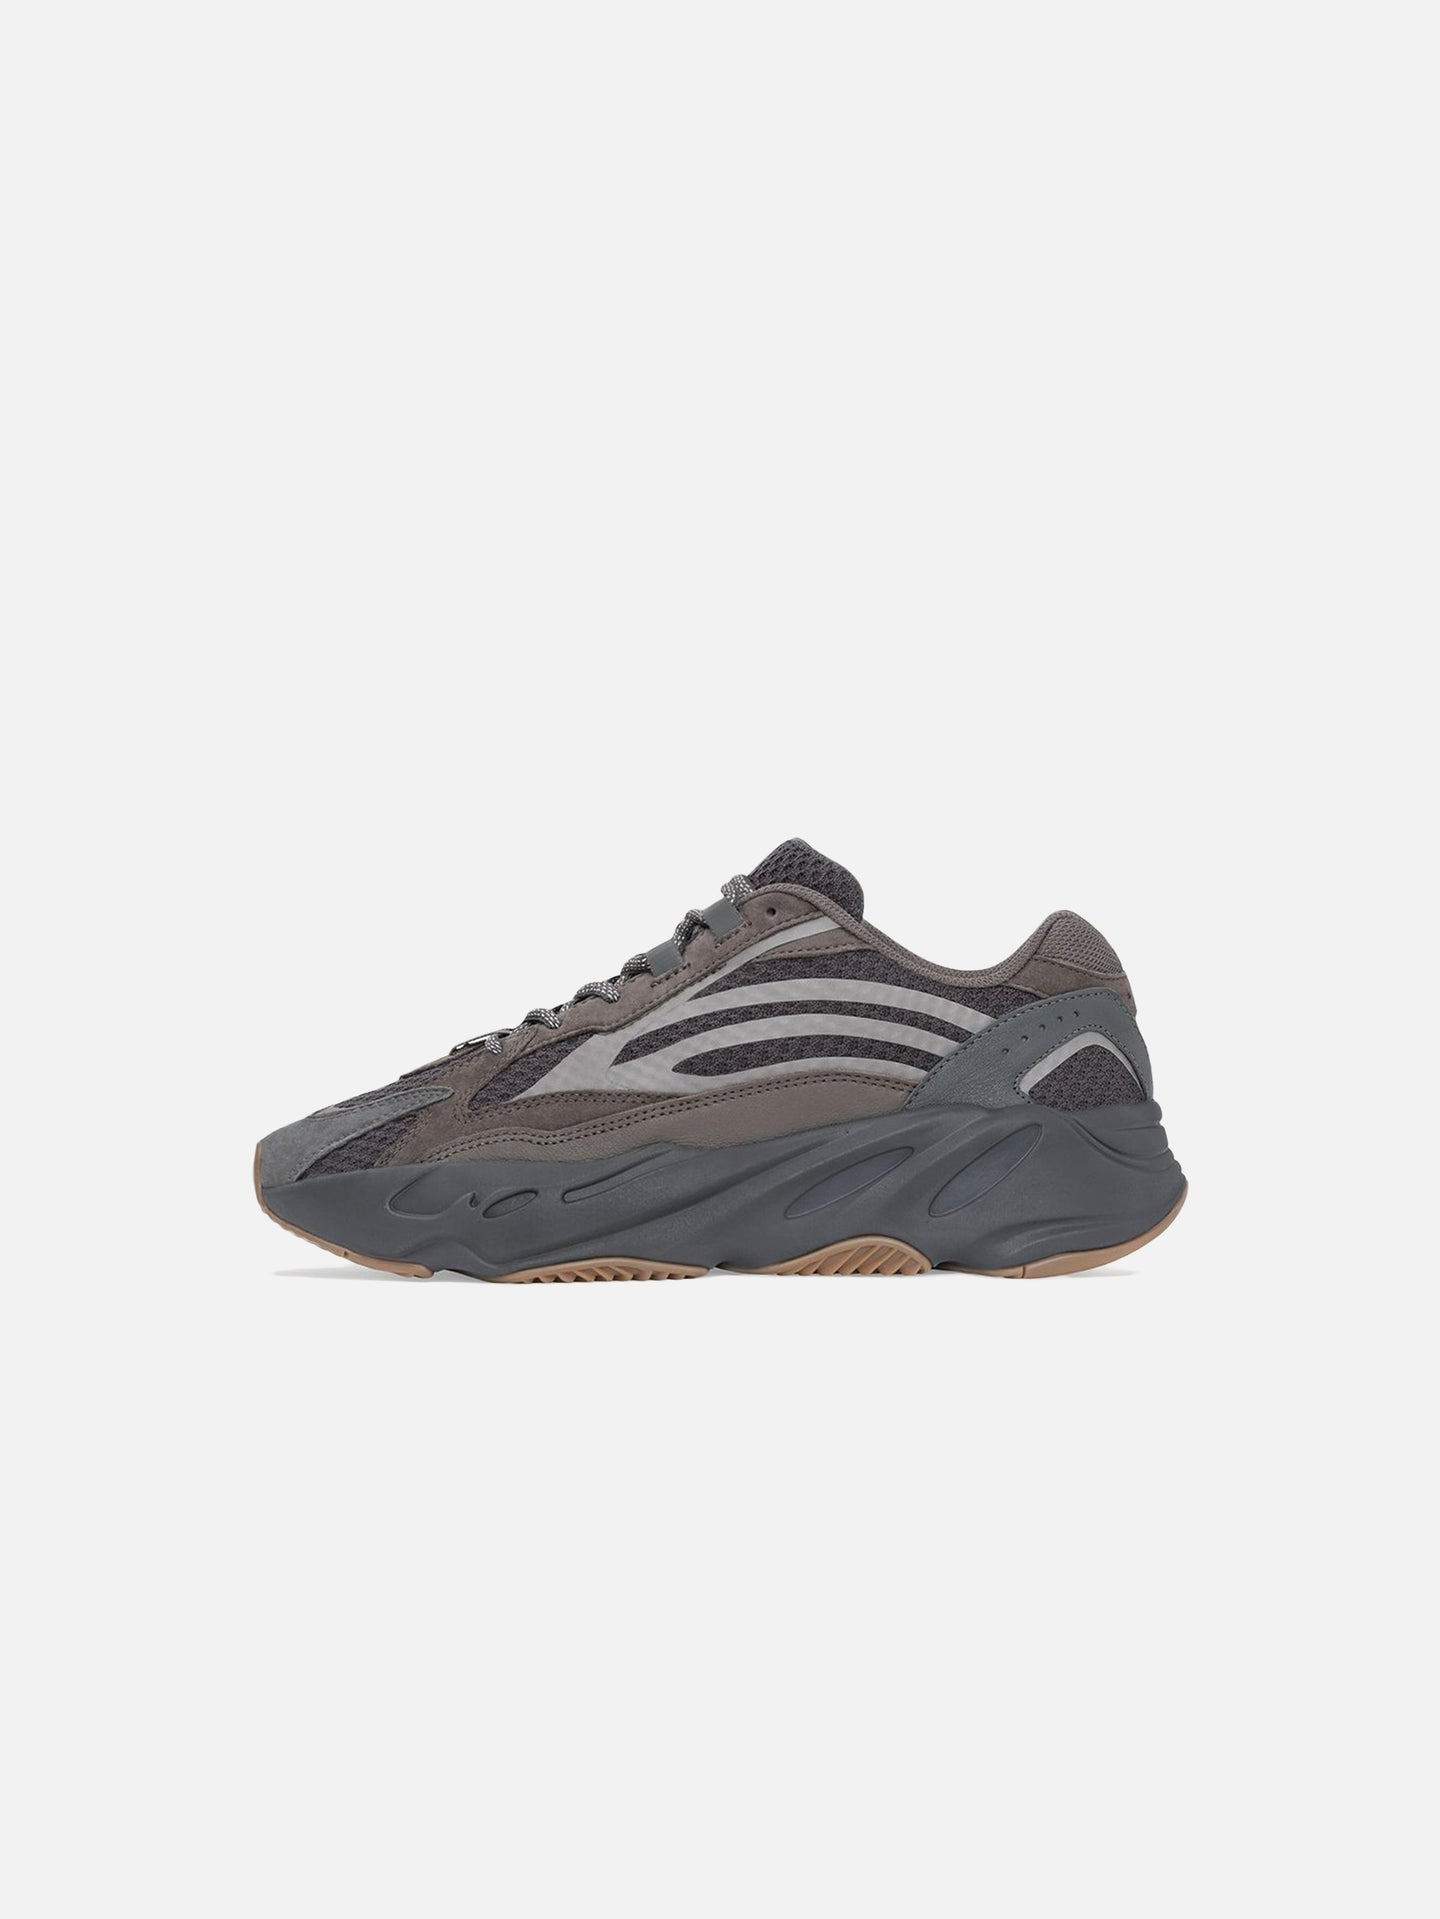 70e8ff260b6 YEEZY BOOST 700 V2  GEODE. ADIDAS. by KANYE WEST